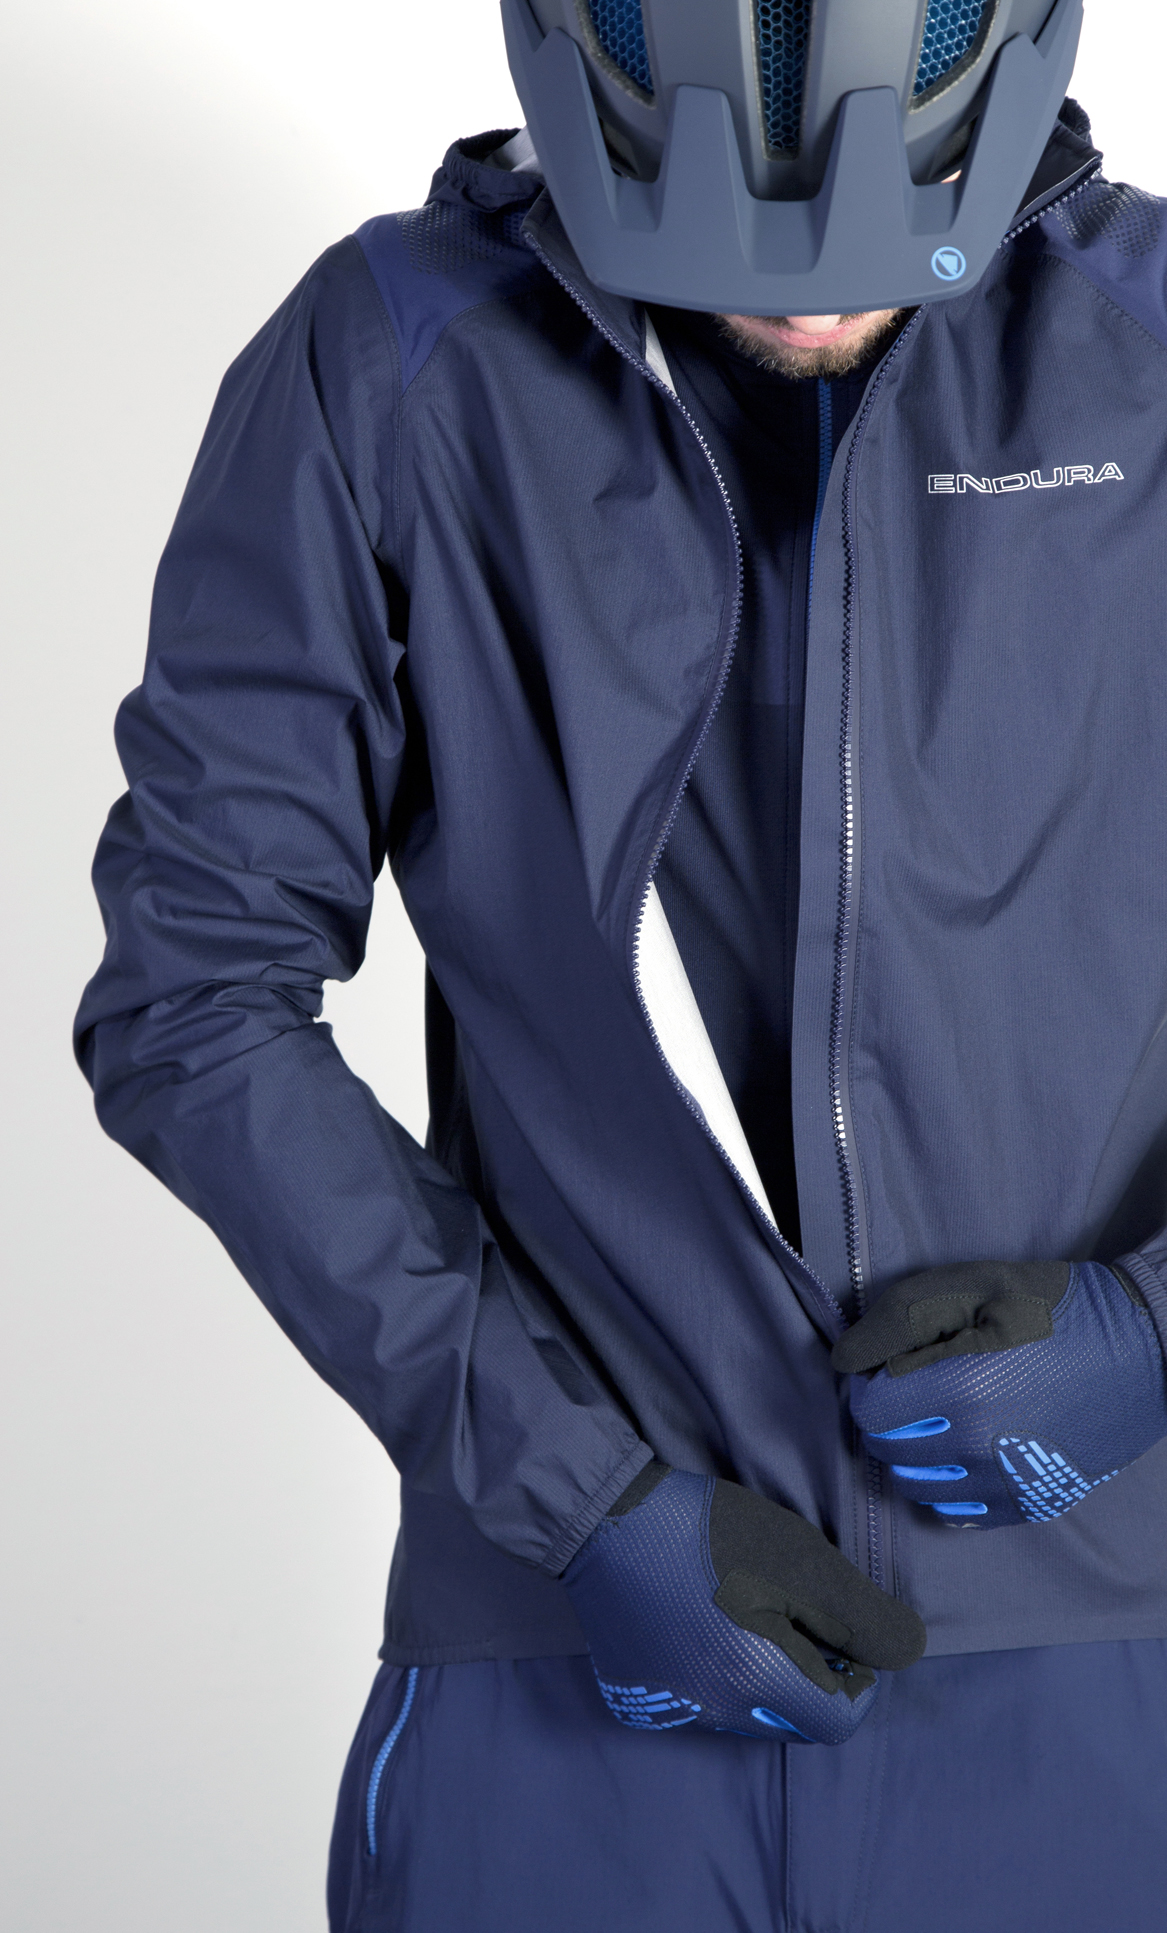 Fast and light - packable, waterproof protection